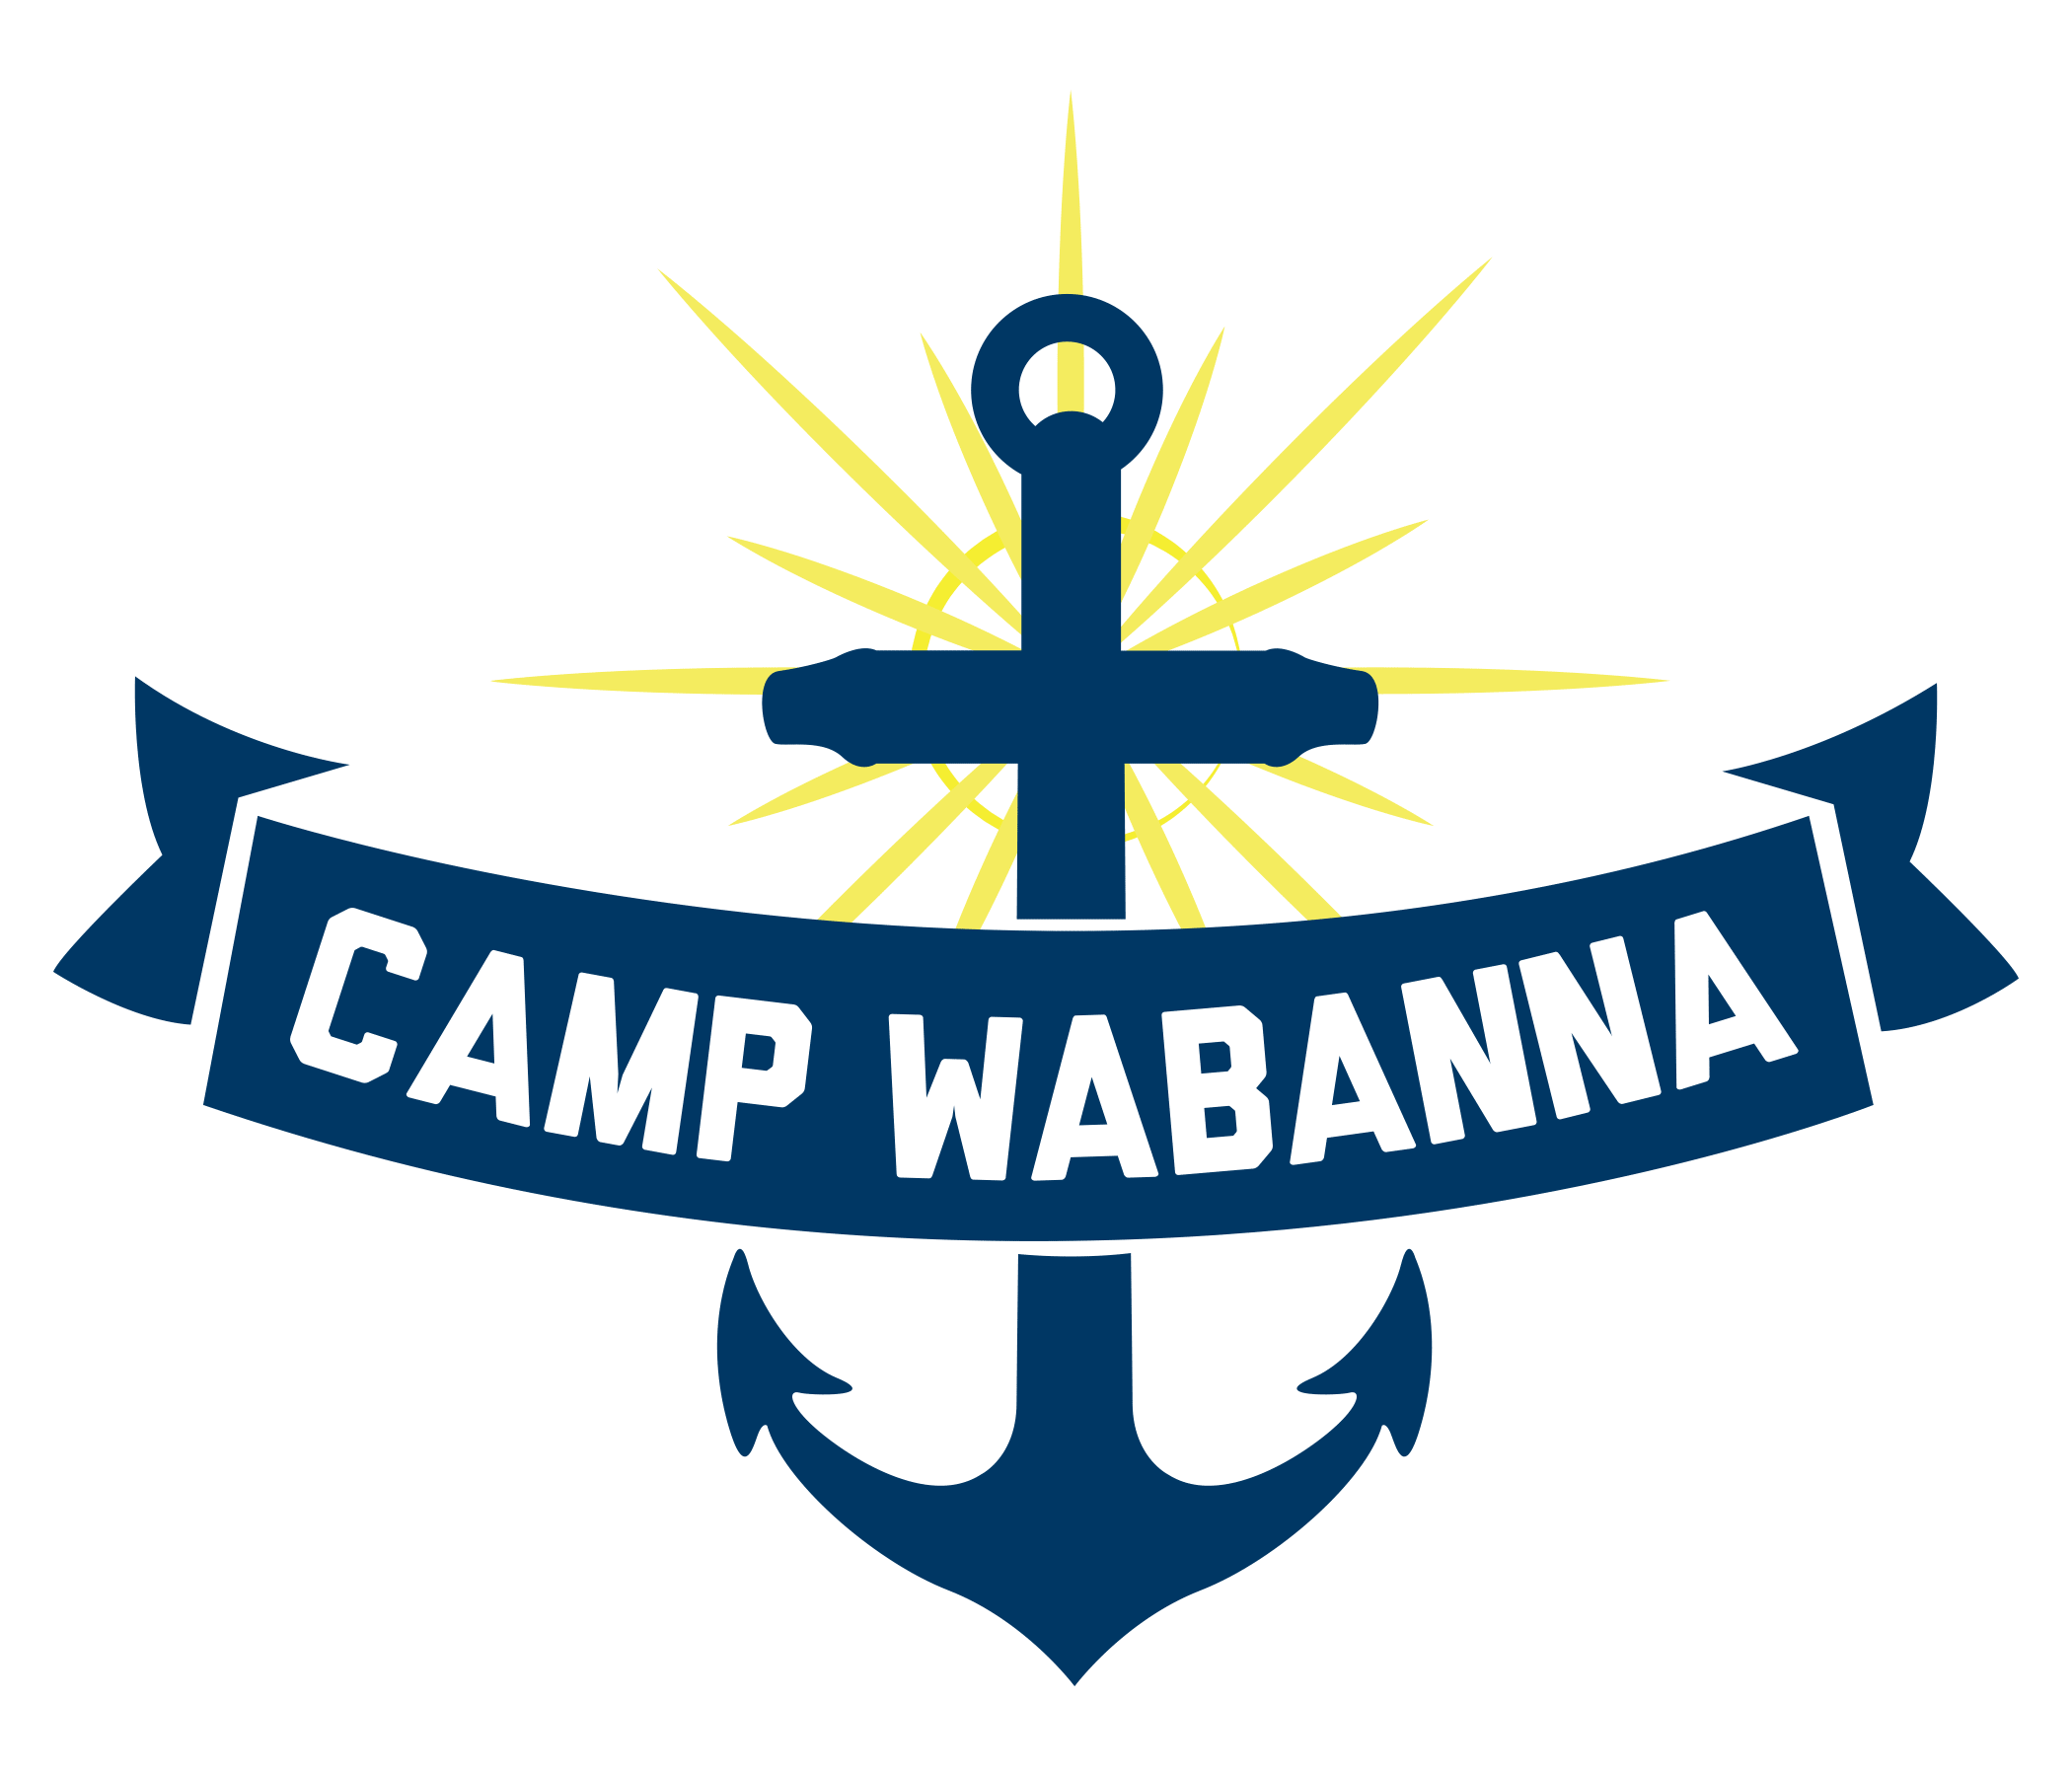 Camp Wabanna Logo